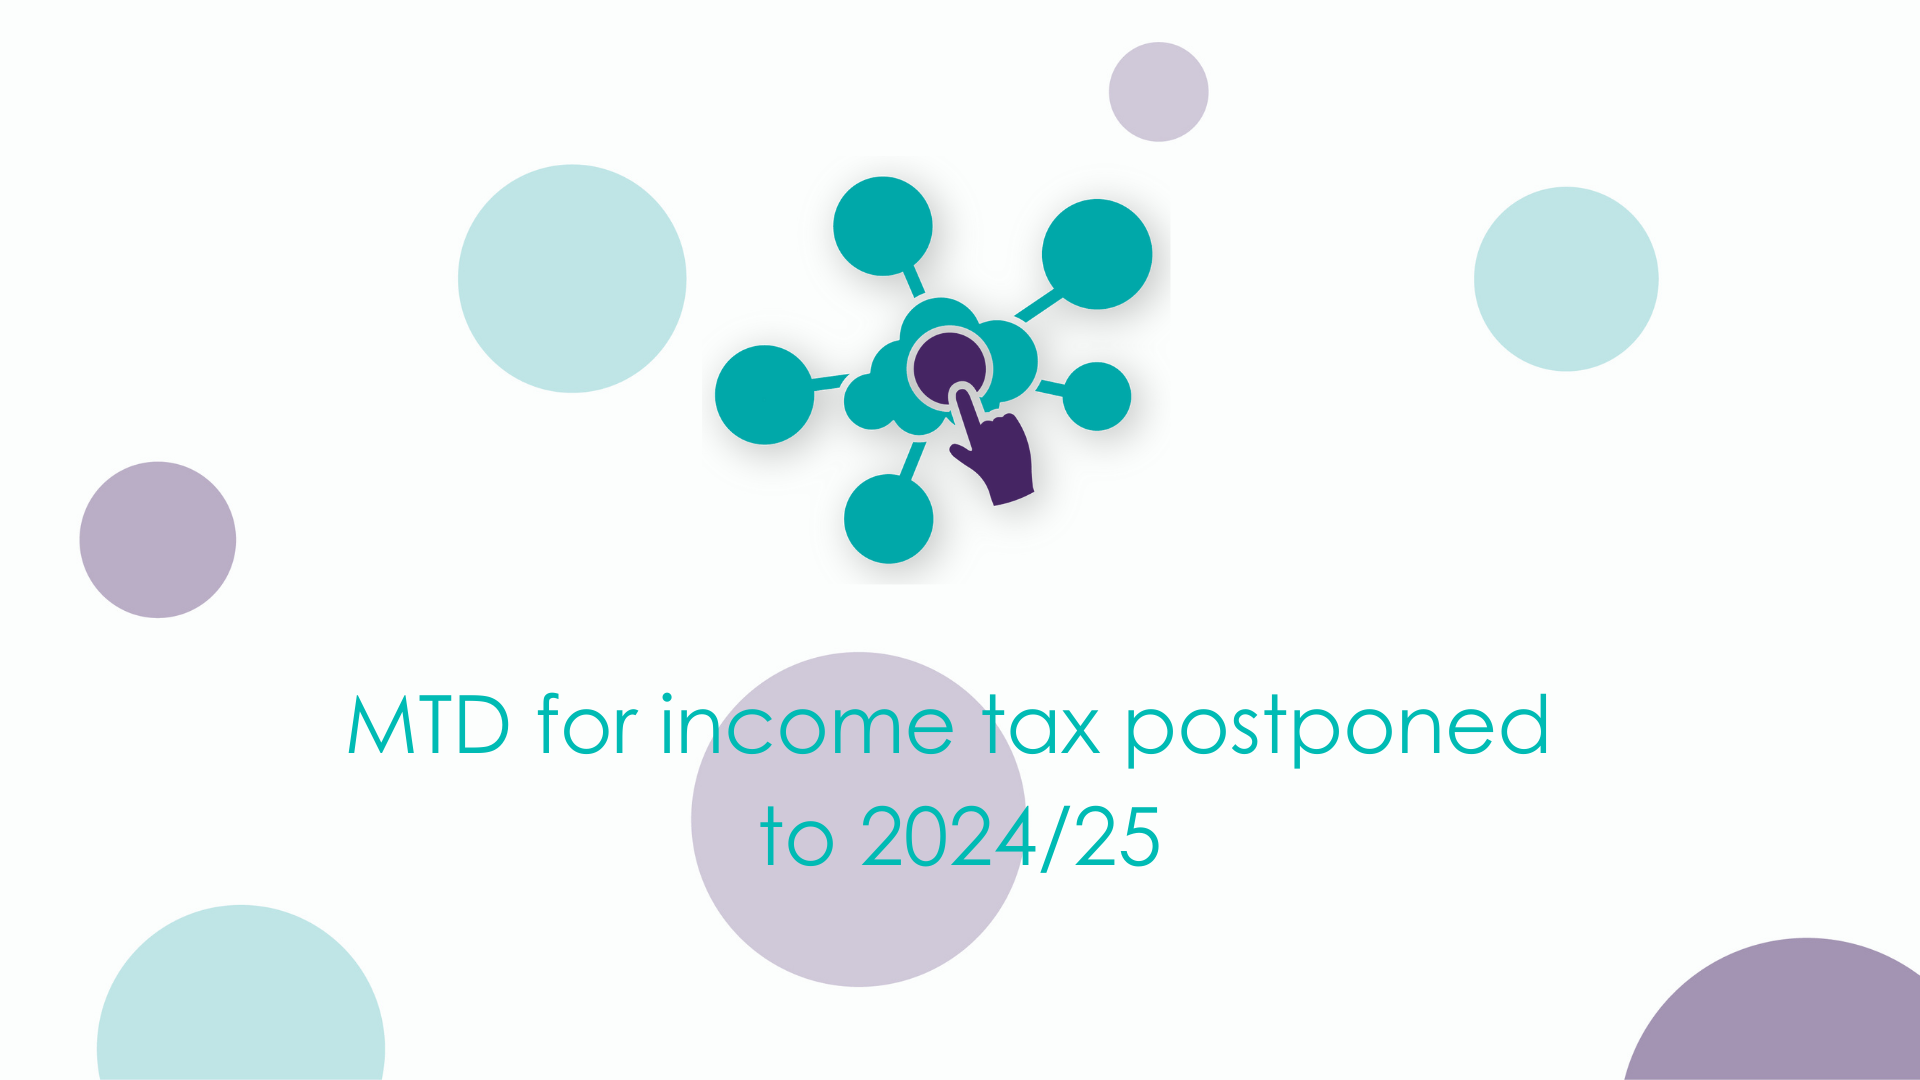 MTD for income tax postponed to 2024/25